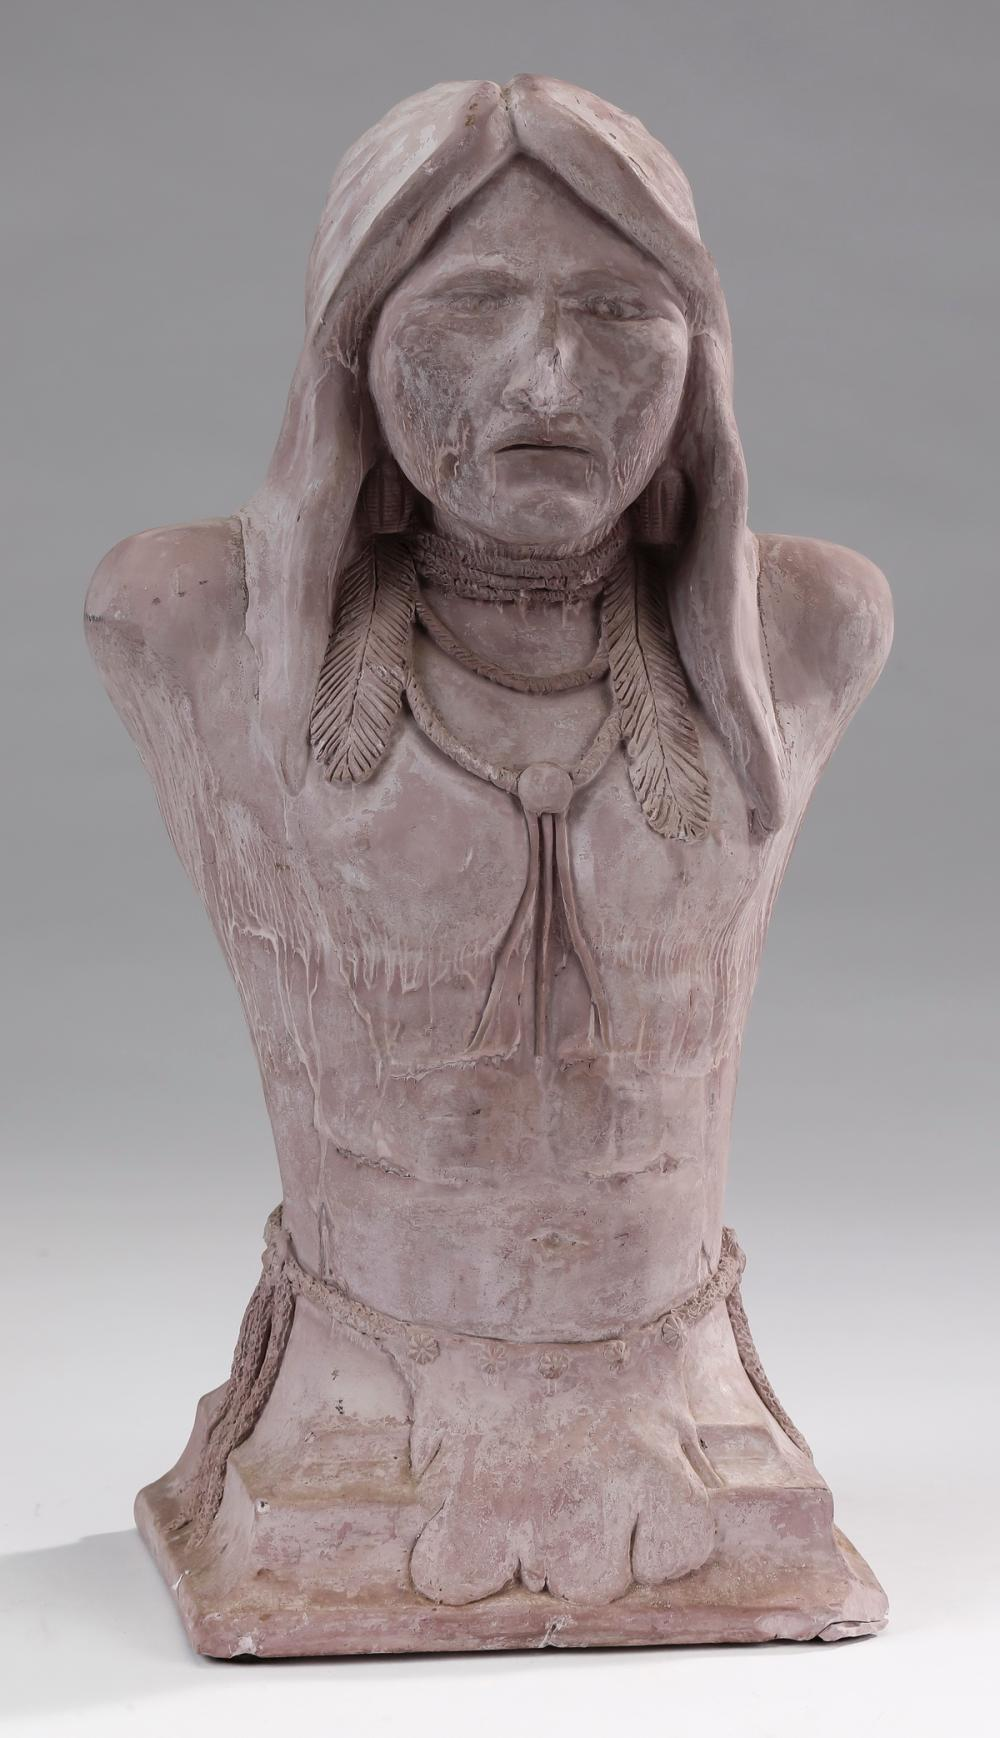 Silas Smith, 'The Walker' Native American sculpture